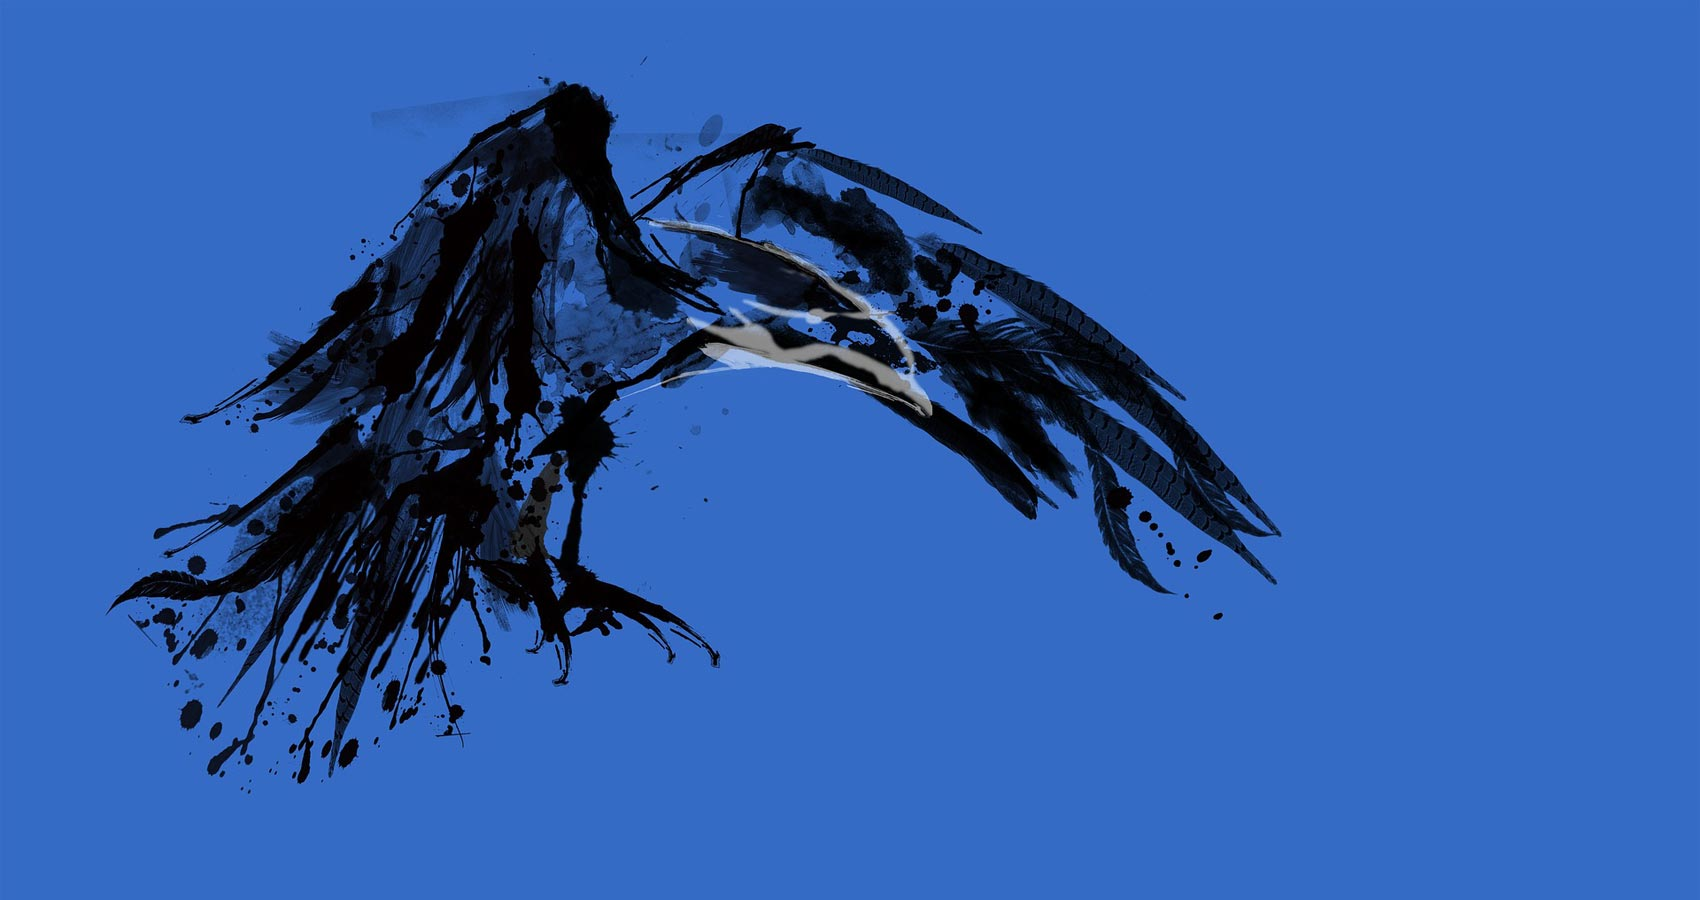 My Omen Crows, a poem by Paul Thwaites at Spillwords.com